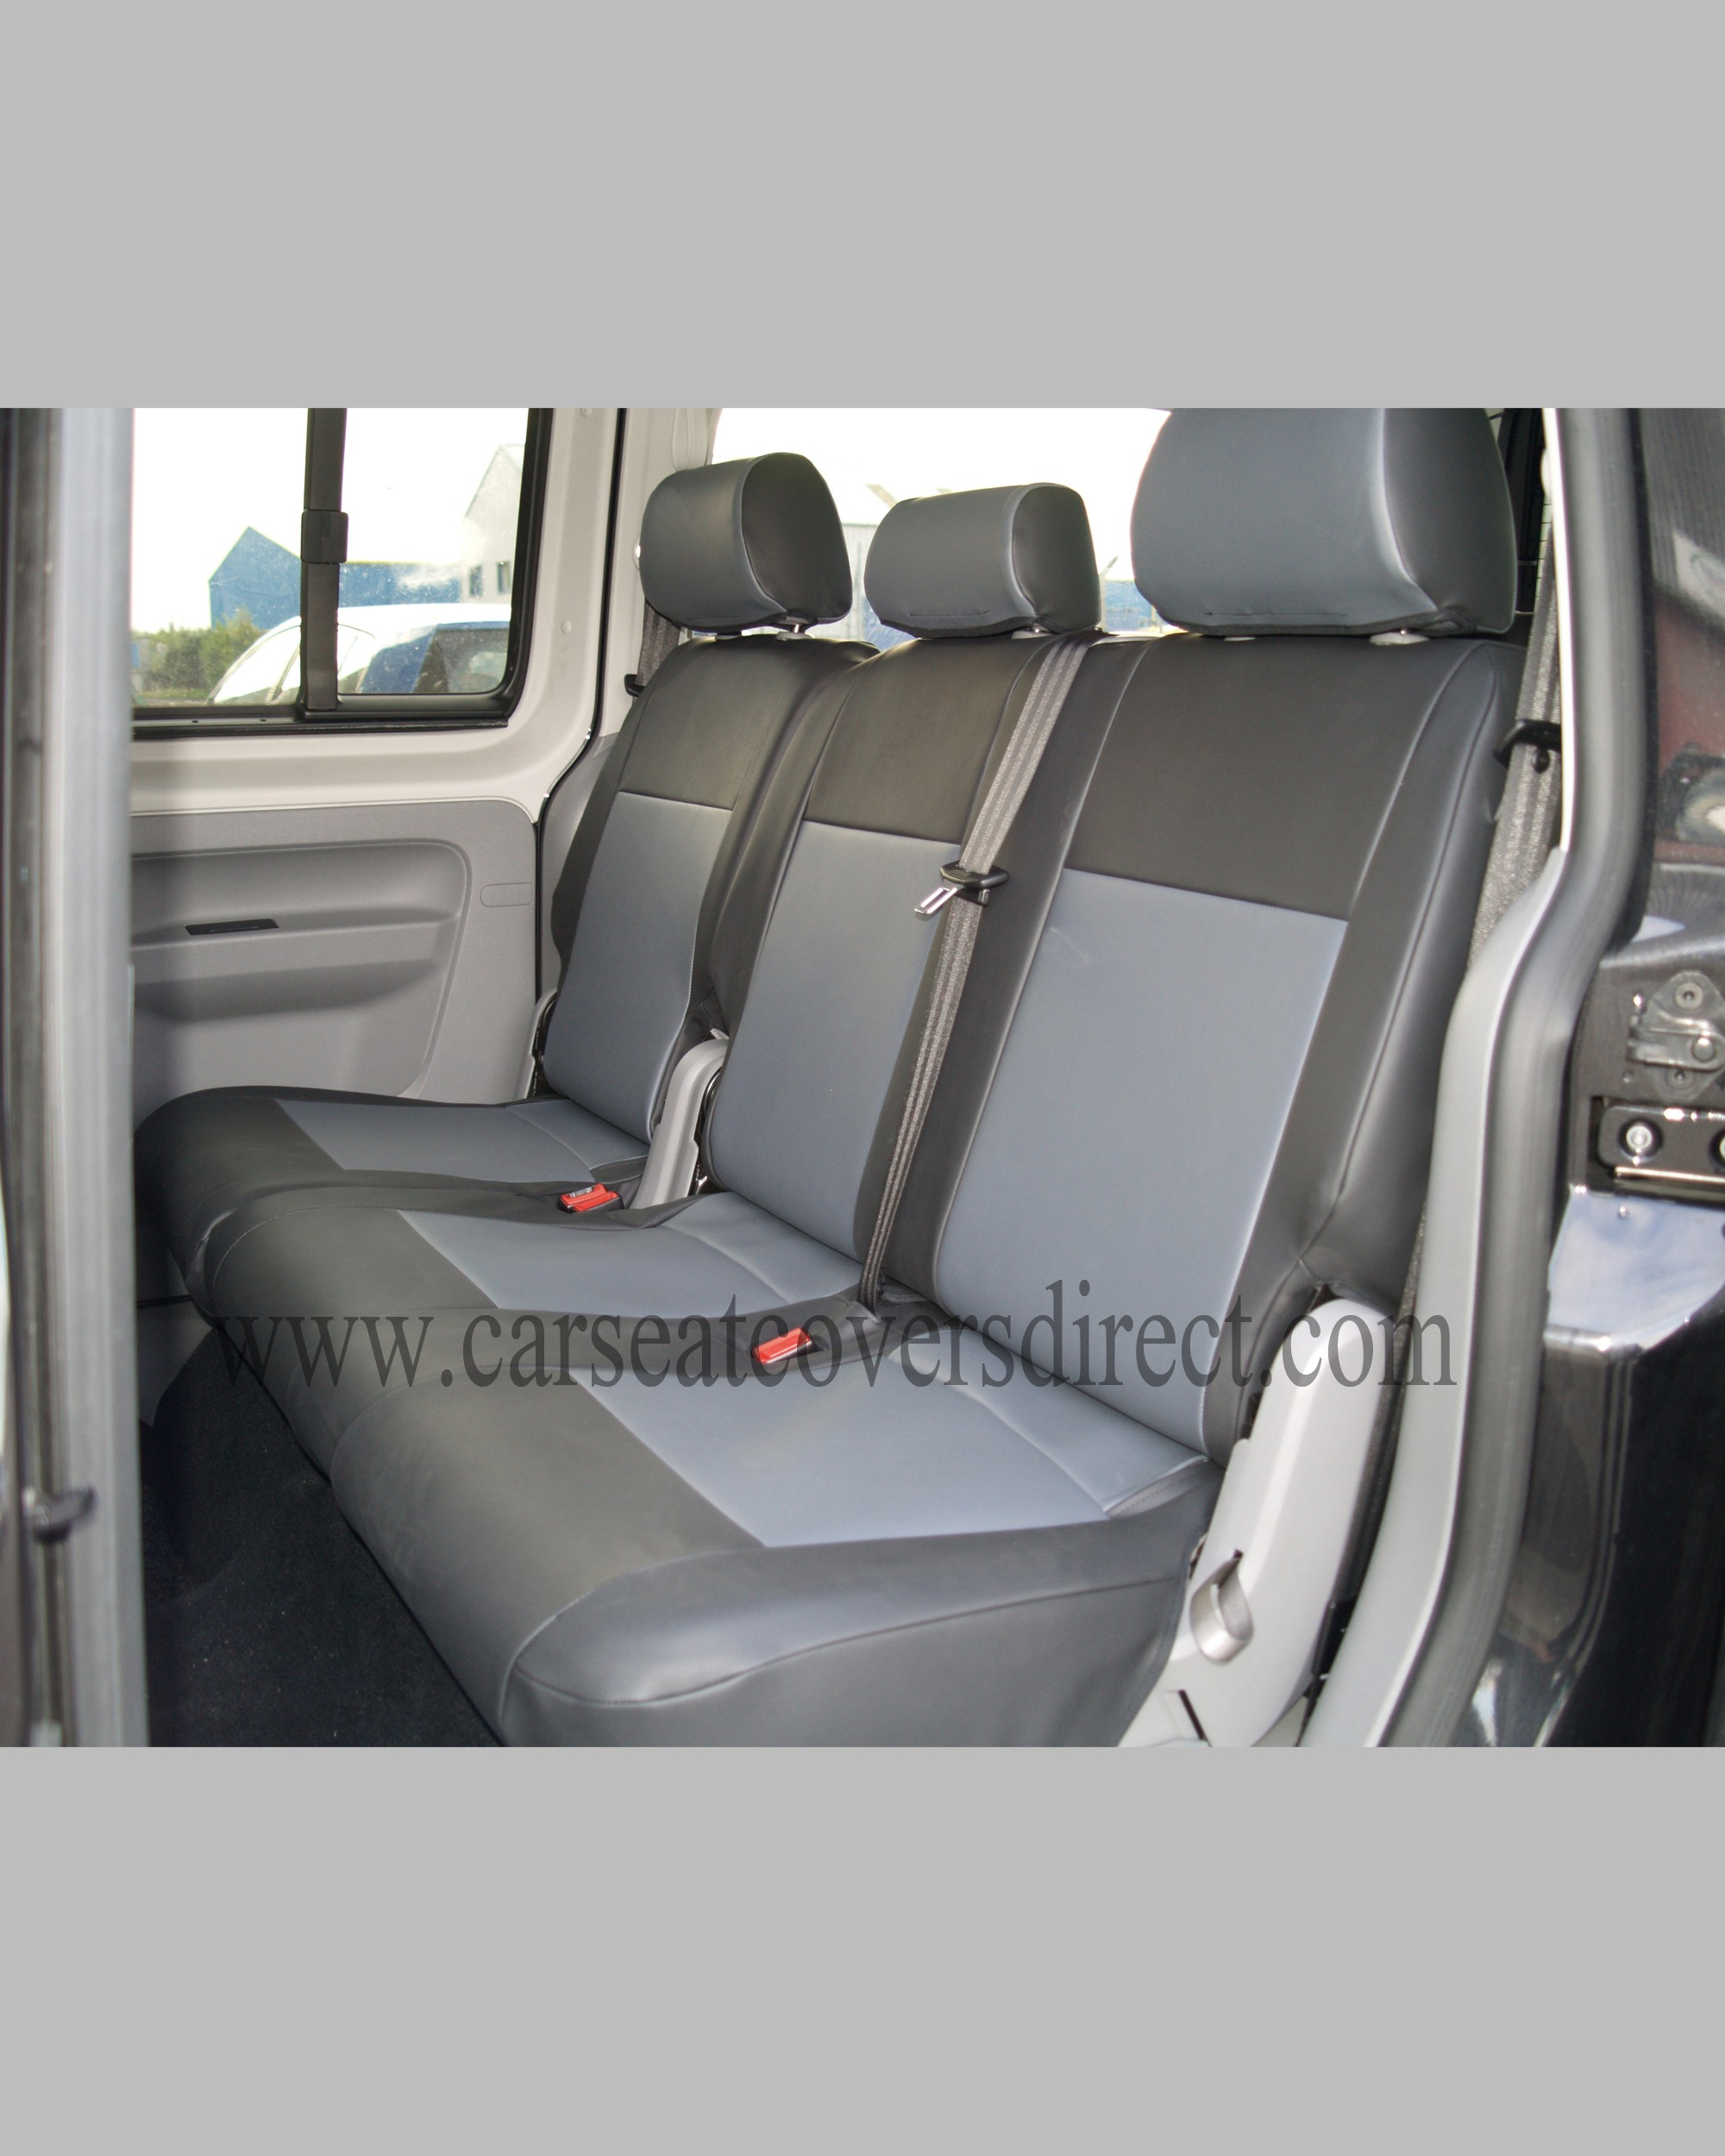 volkswagen vw caddy life black grey seat covers car seat covers direct tailored to your choice. Black Bedroom Furniture Sets. Home Design Ideas